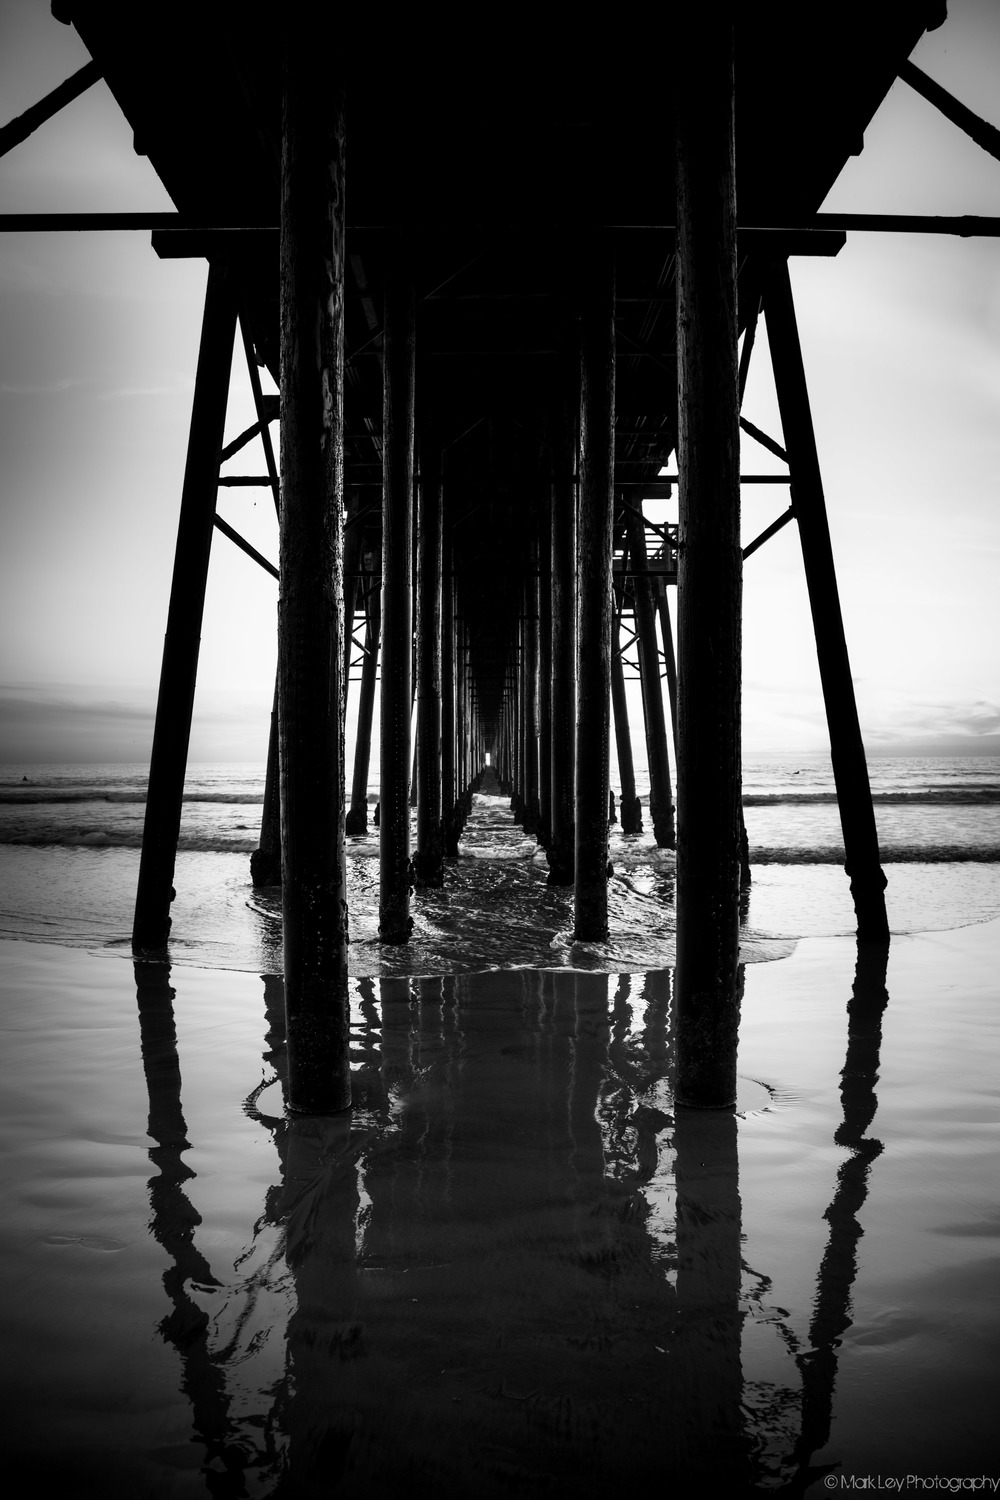 Under the Oceanside Pier by Mark Ley